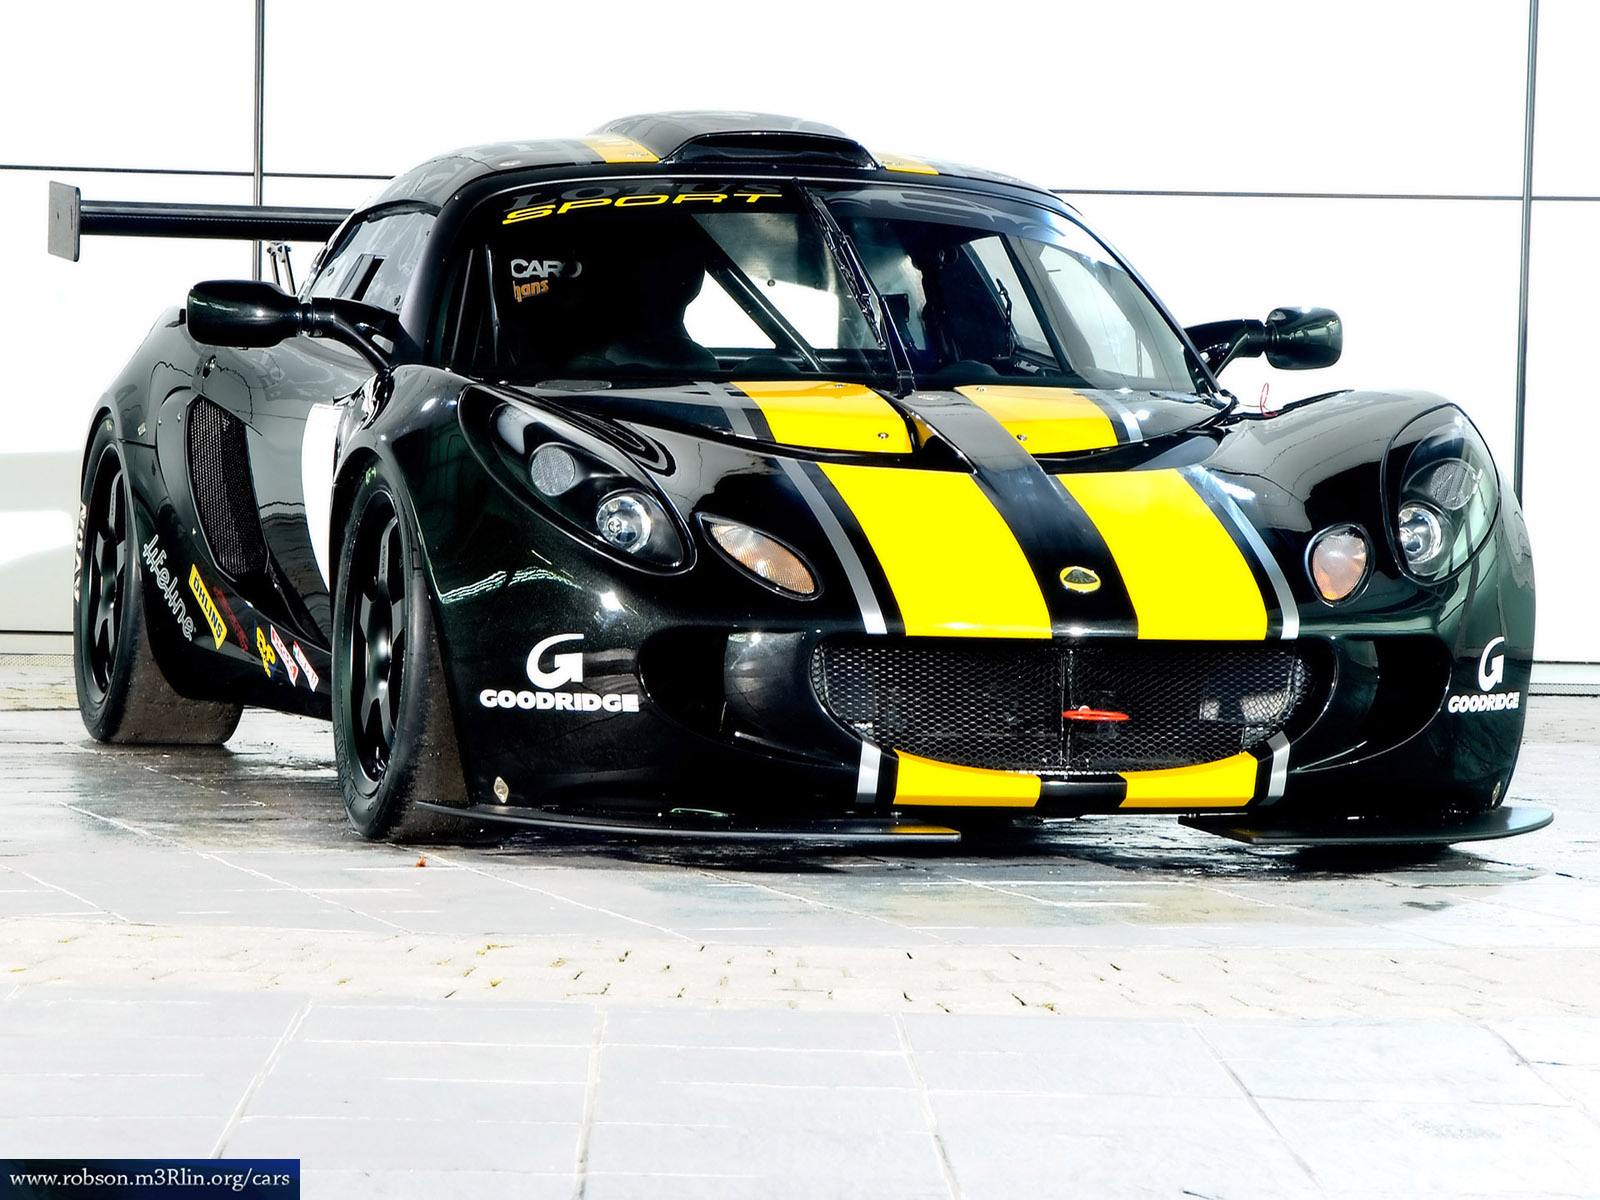 Sport Cars Lotus Exige Gt Pictures Amp Automotive News 366362 Wallpaper wallpaper